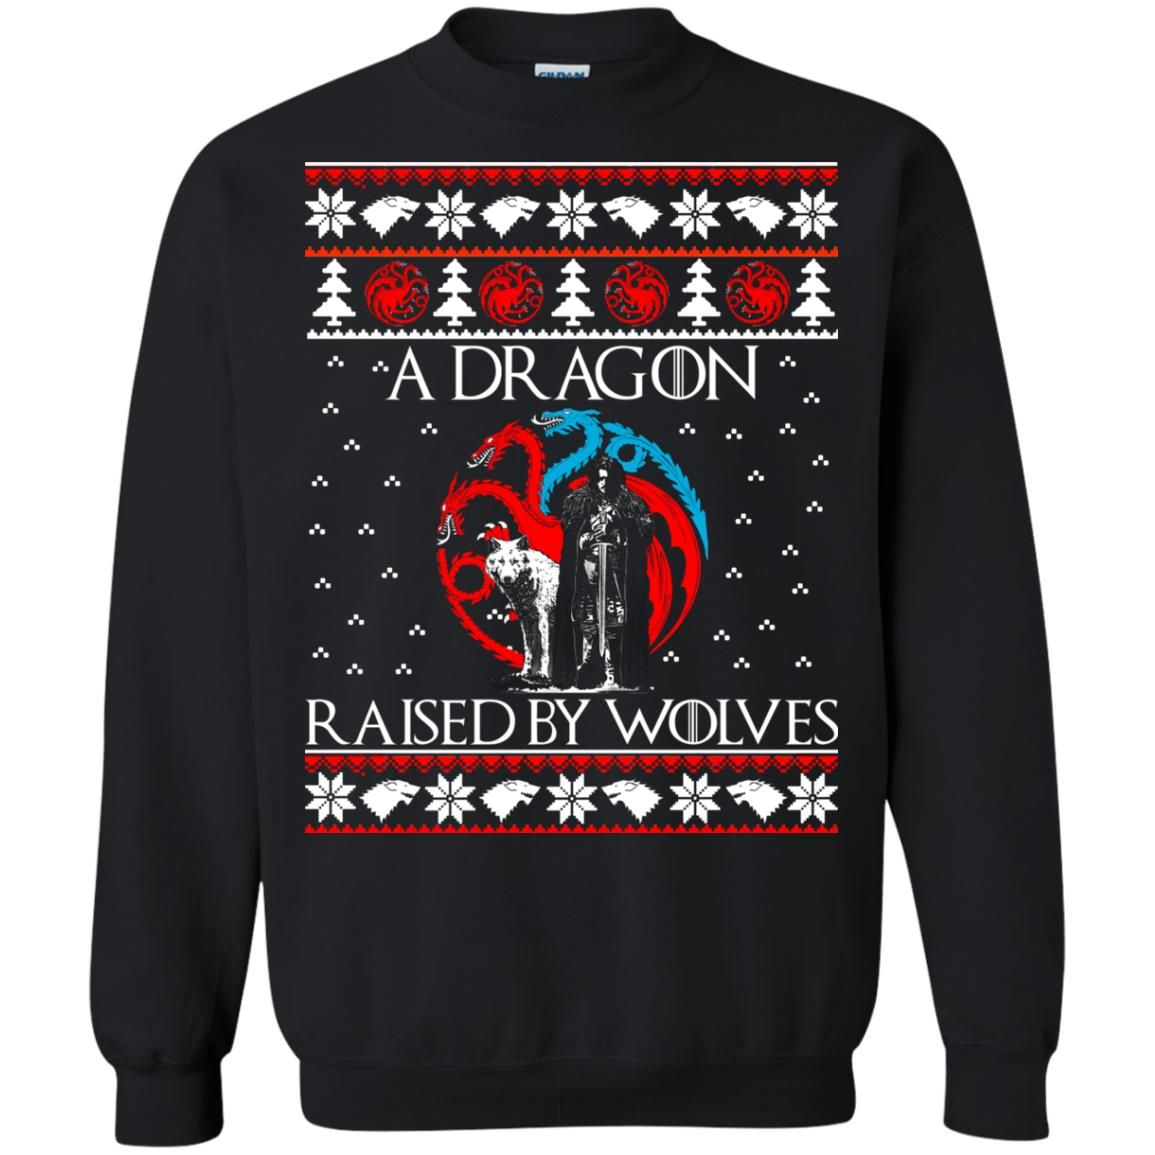 image 880 - A Dragon raised by Wolves Christmas sweatshirt, hoodie